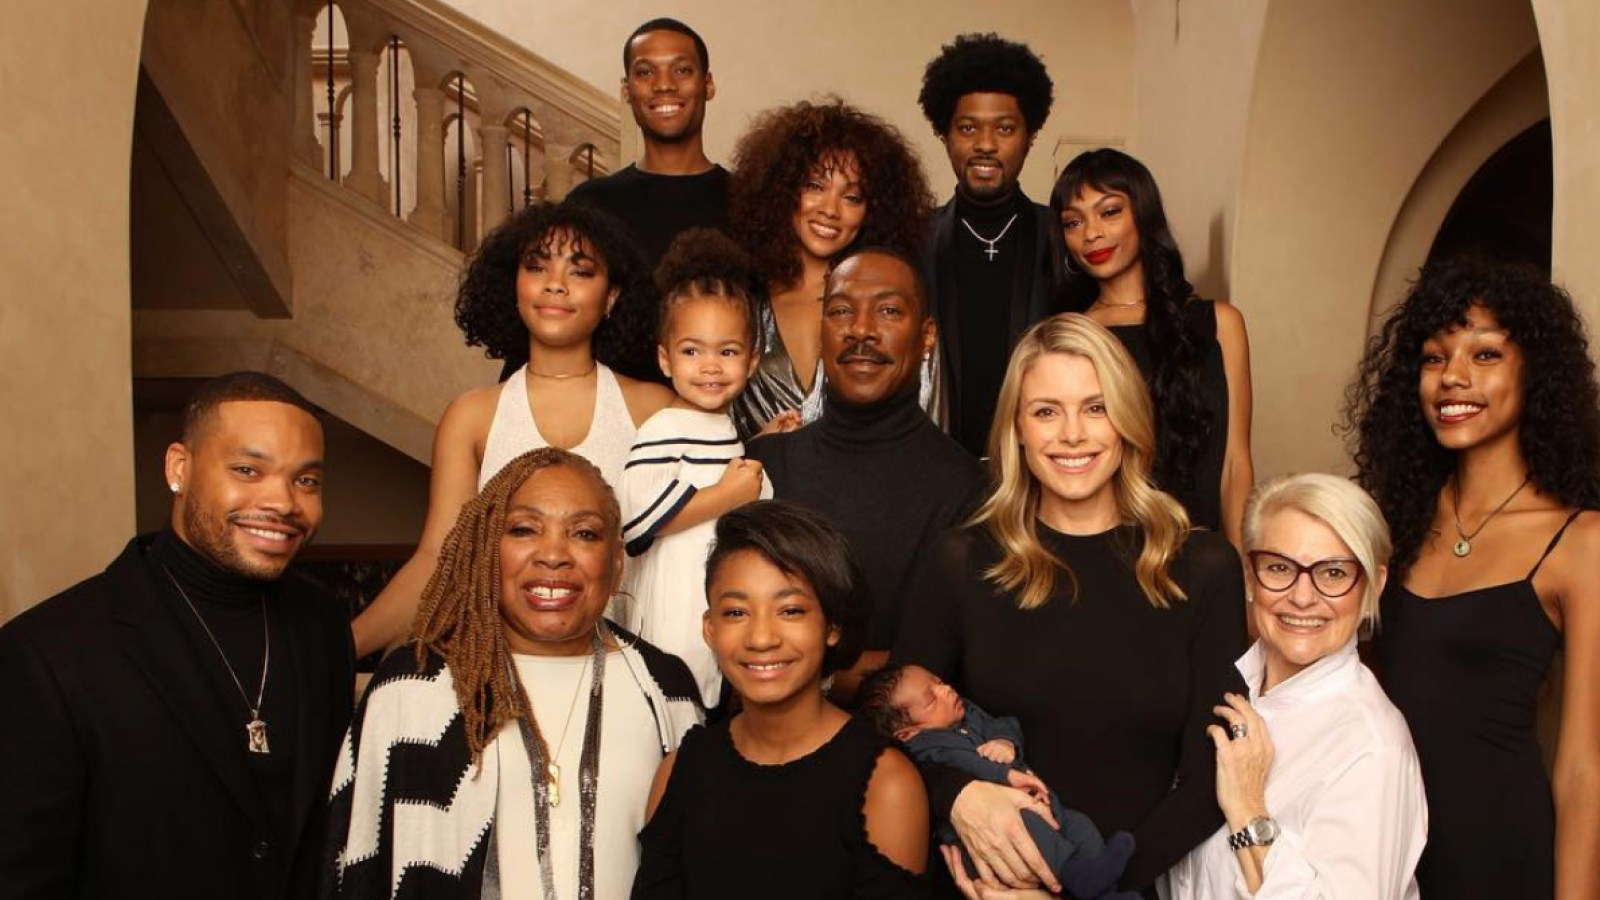 Eddie Murphy Poses With All 10 Of His Kids Pic